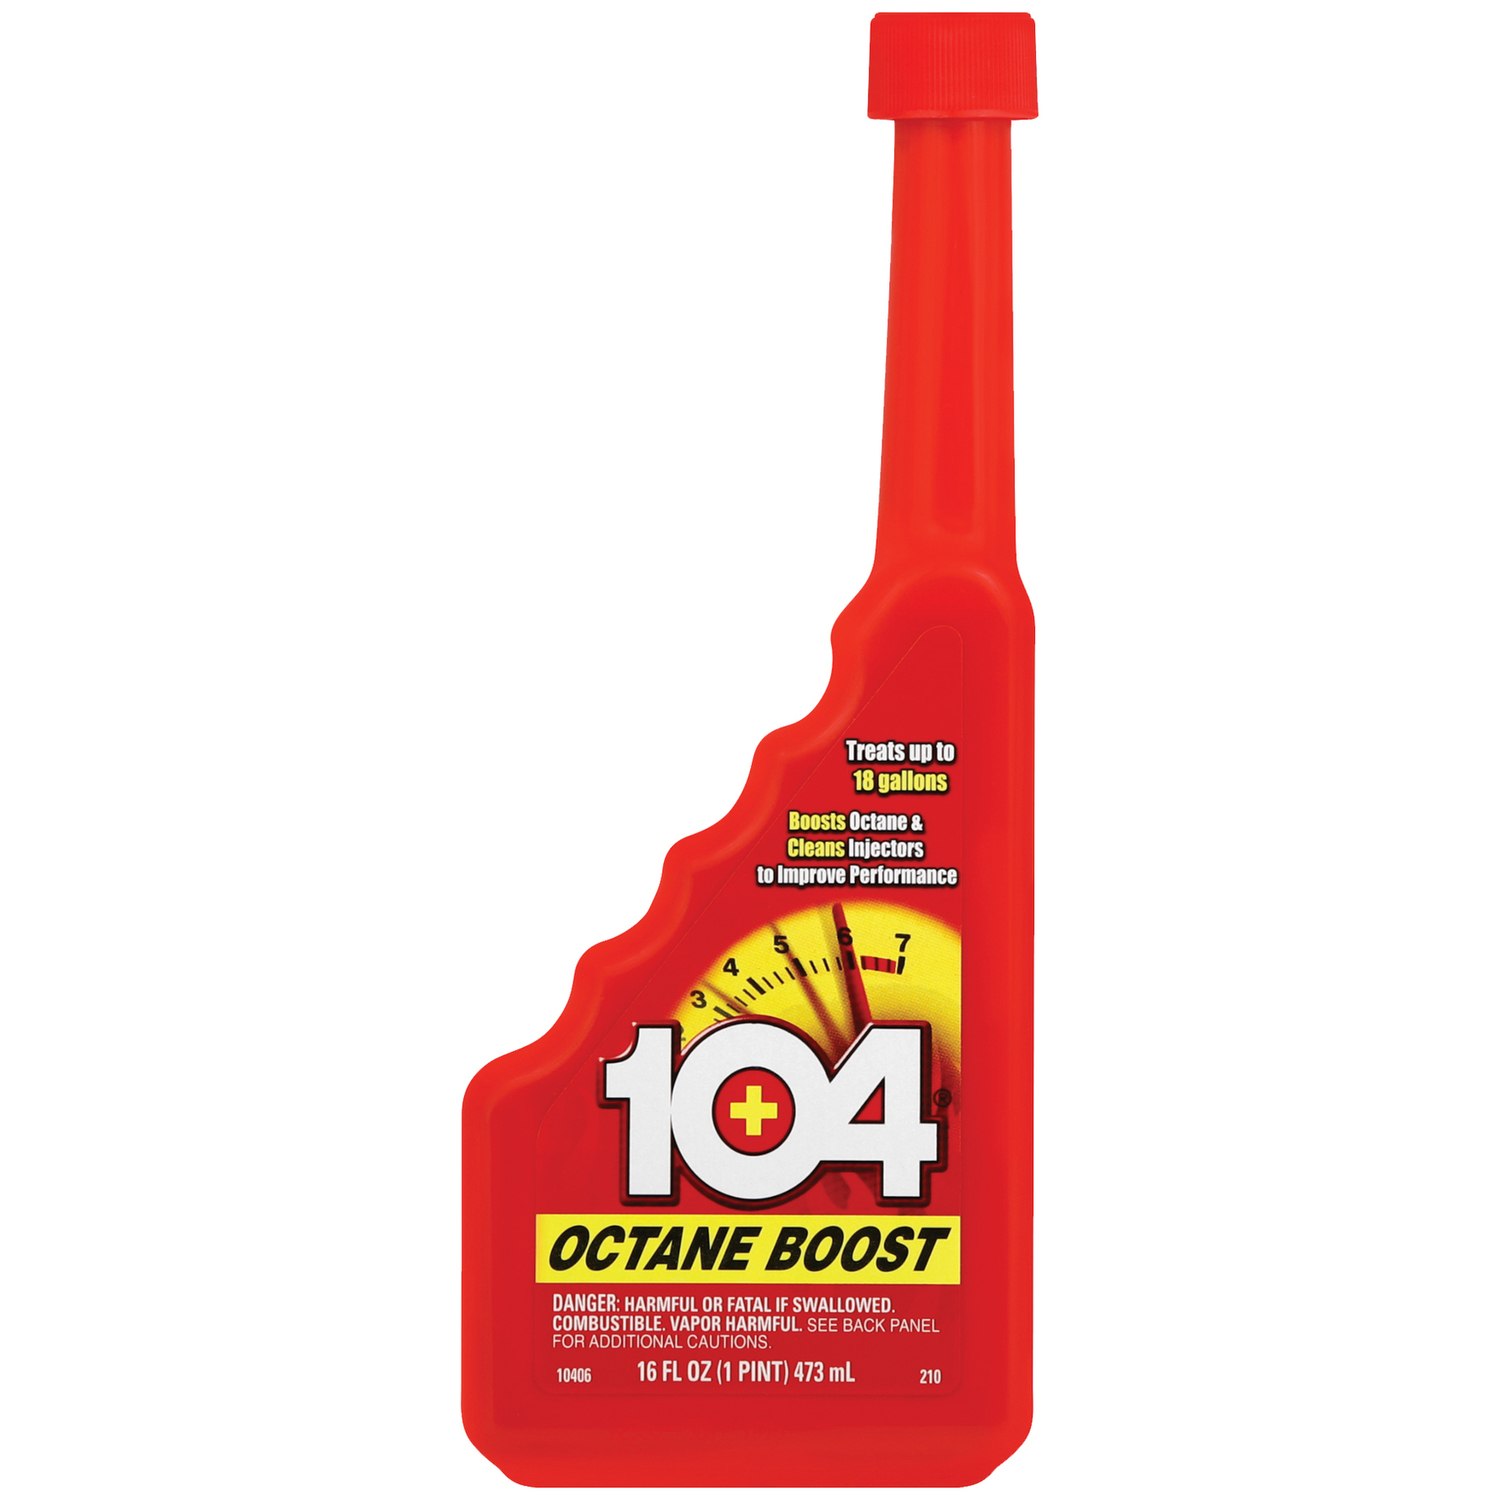 Gold Eagle 104+ is the original octane booster since 1975. 104+ Octane Boost improves power, acceleration, and gas mileage. 104+ also cleans fuel injectors and the complete fuel system. 104 is safe for all catalytic converters and oxygen sensors. (104 is intended for off road use only)